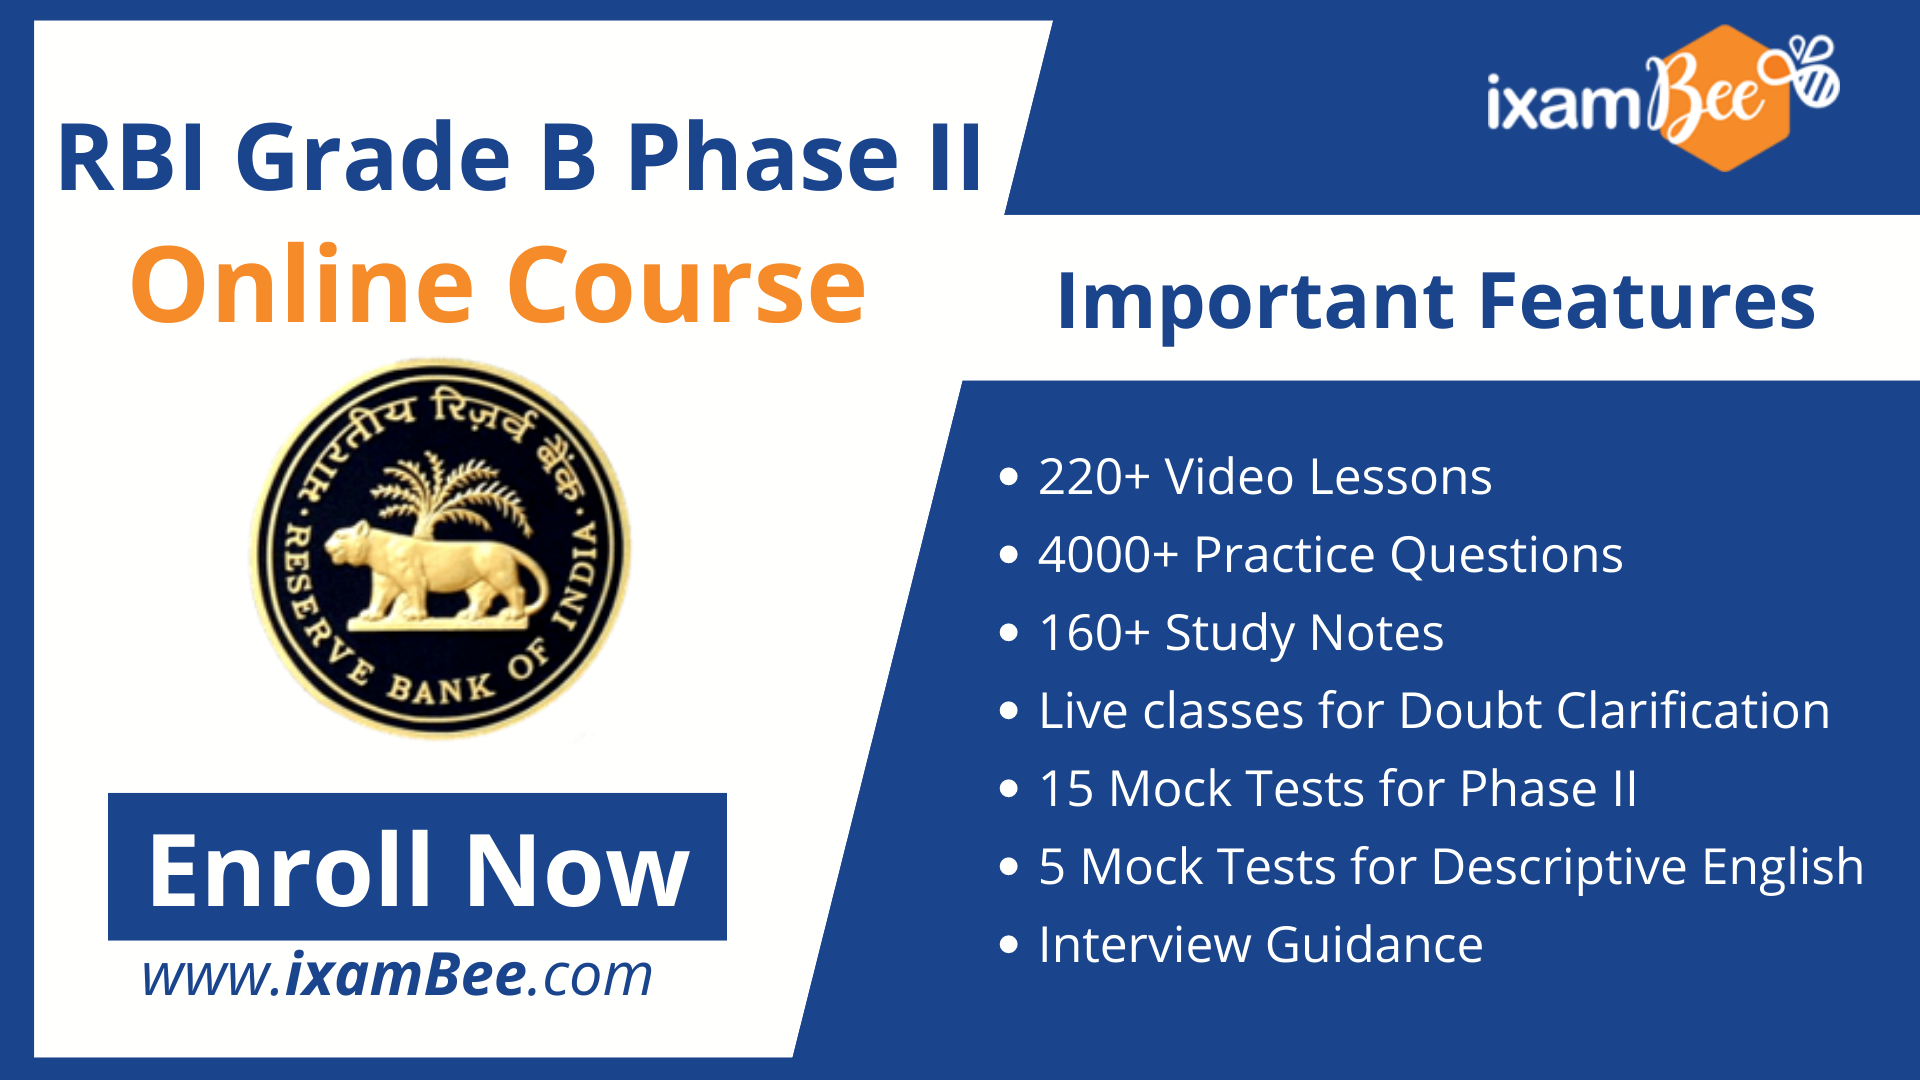 RBI Grade B phase 2 online course